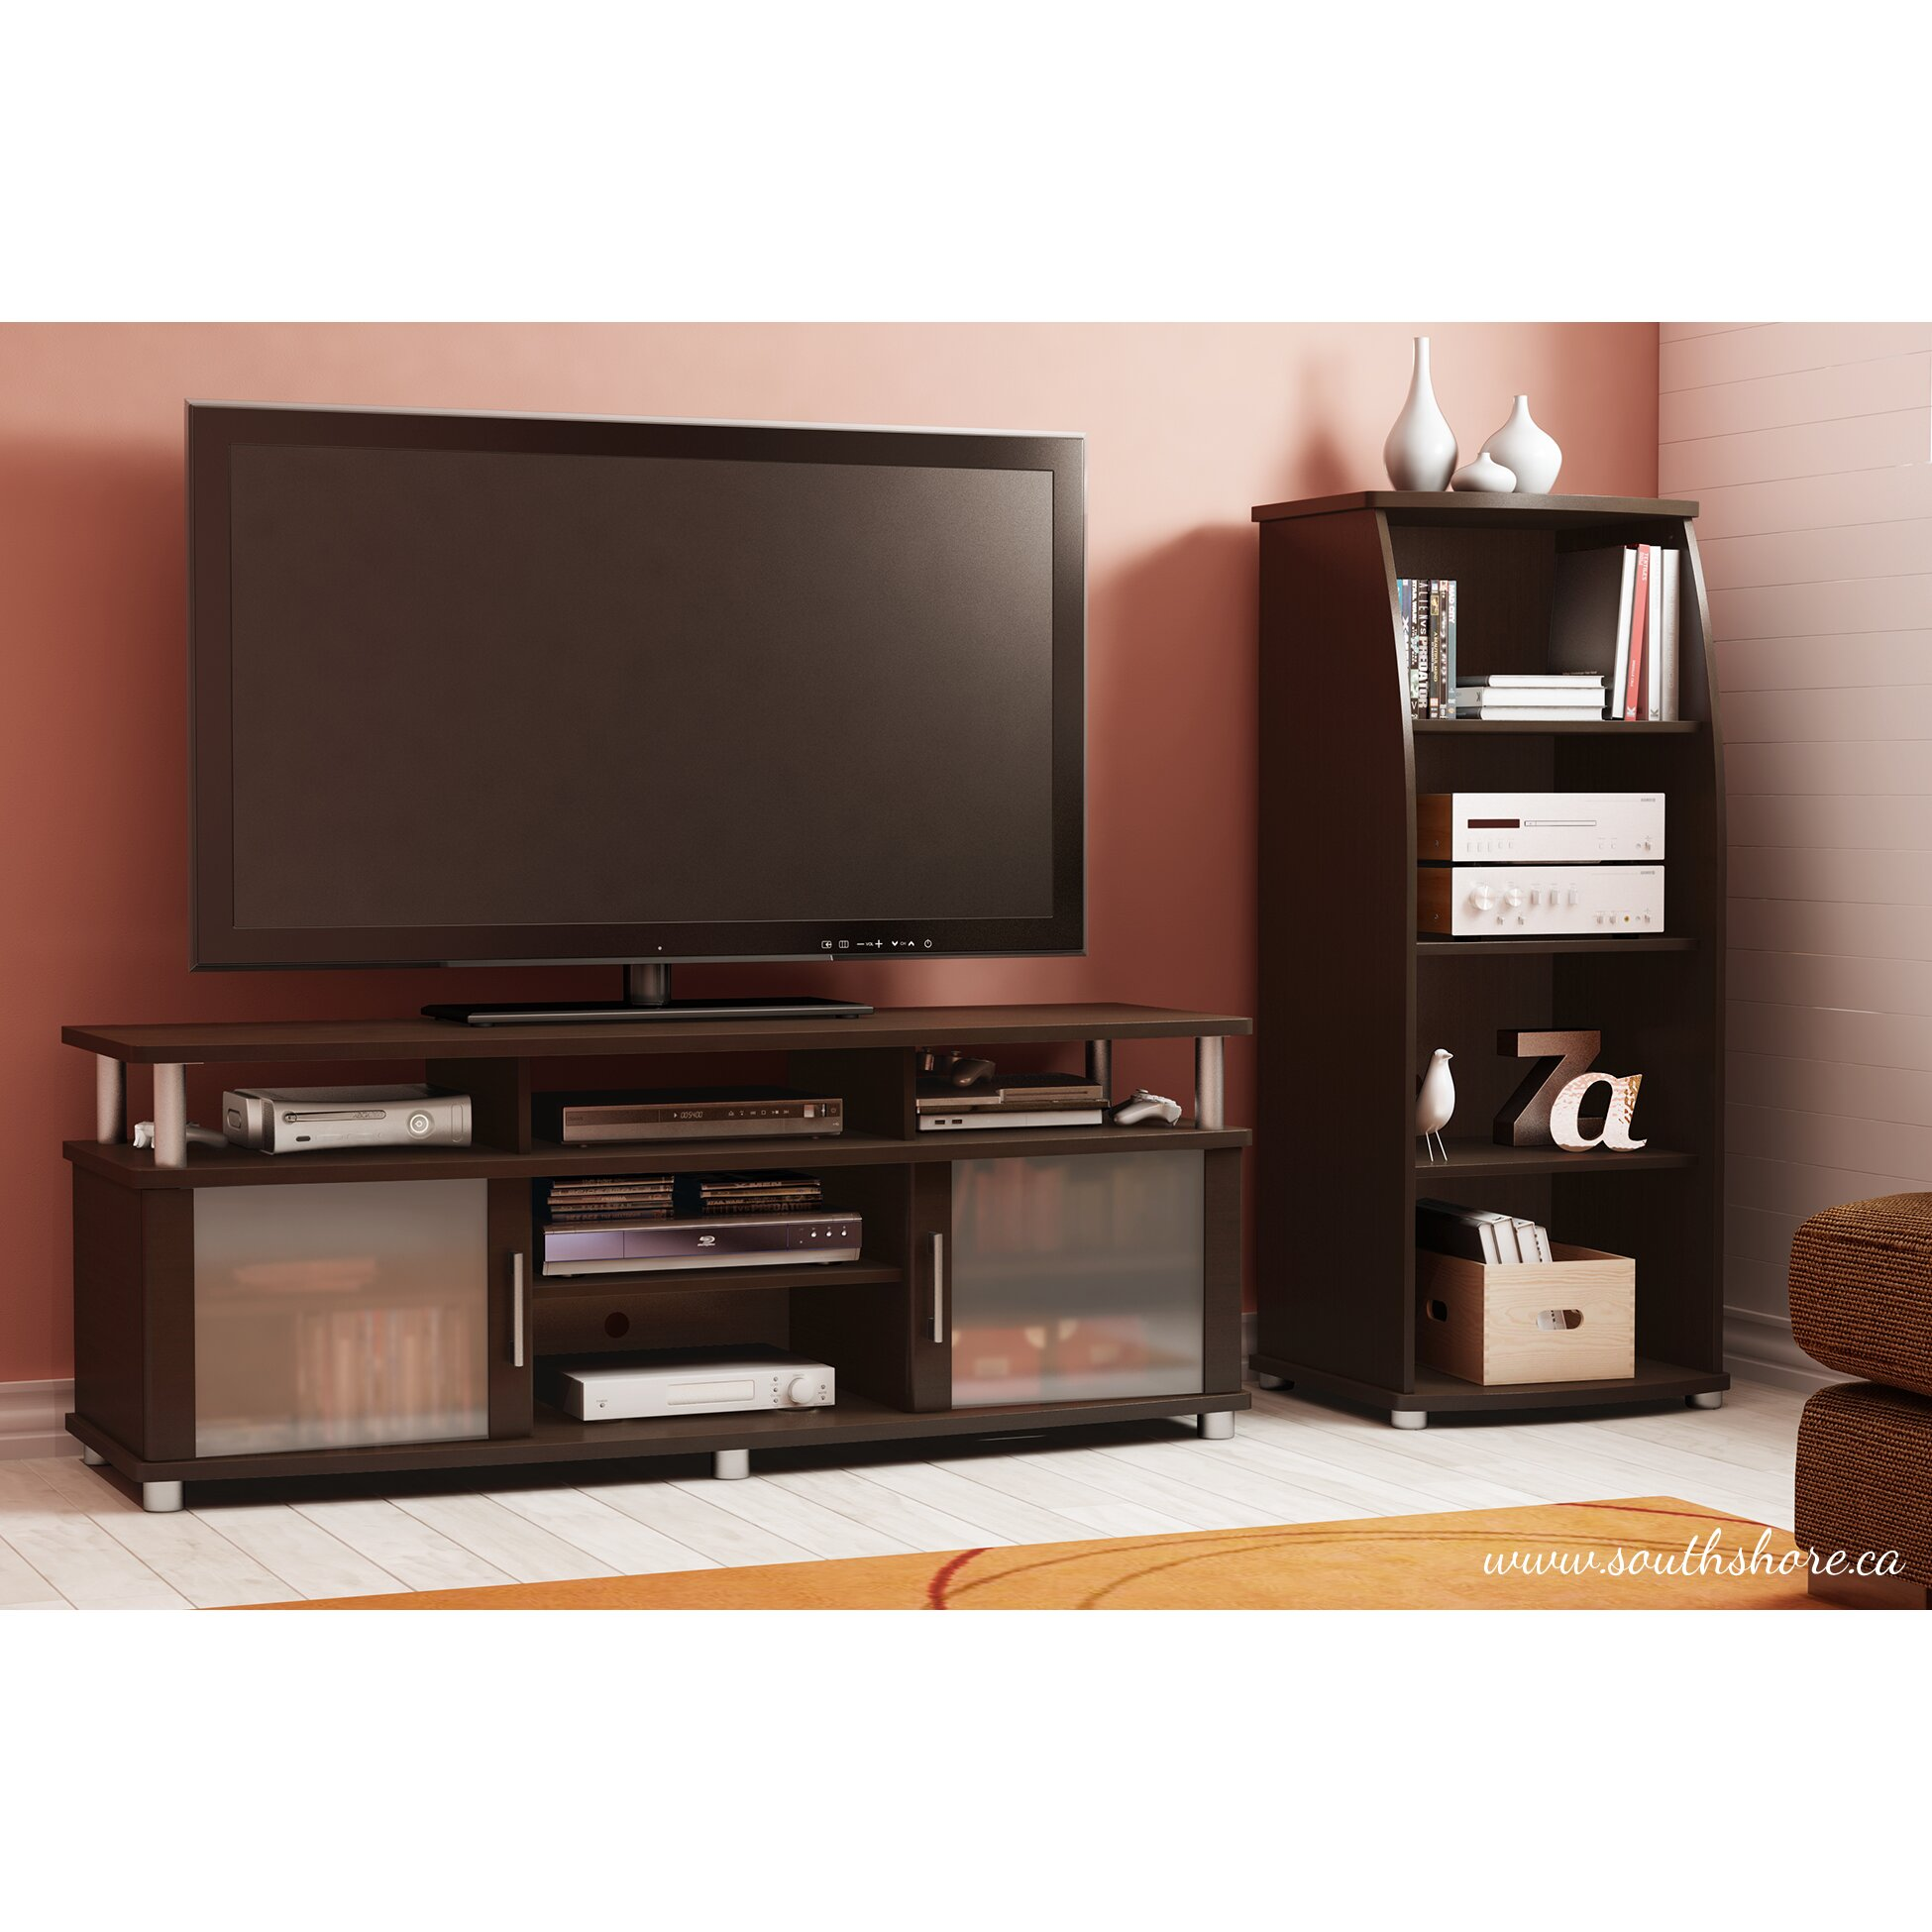 Superior Venerable The Chic South Shore City Life Tv Stand Representation Awesome Design